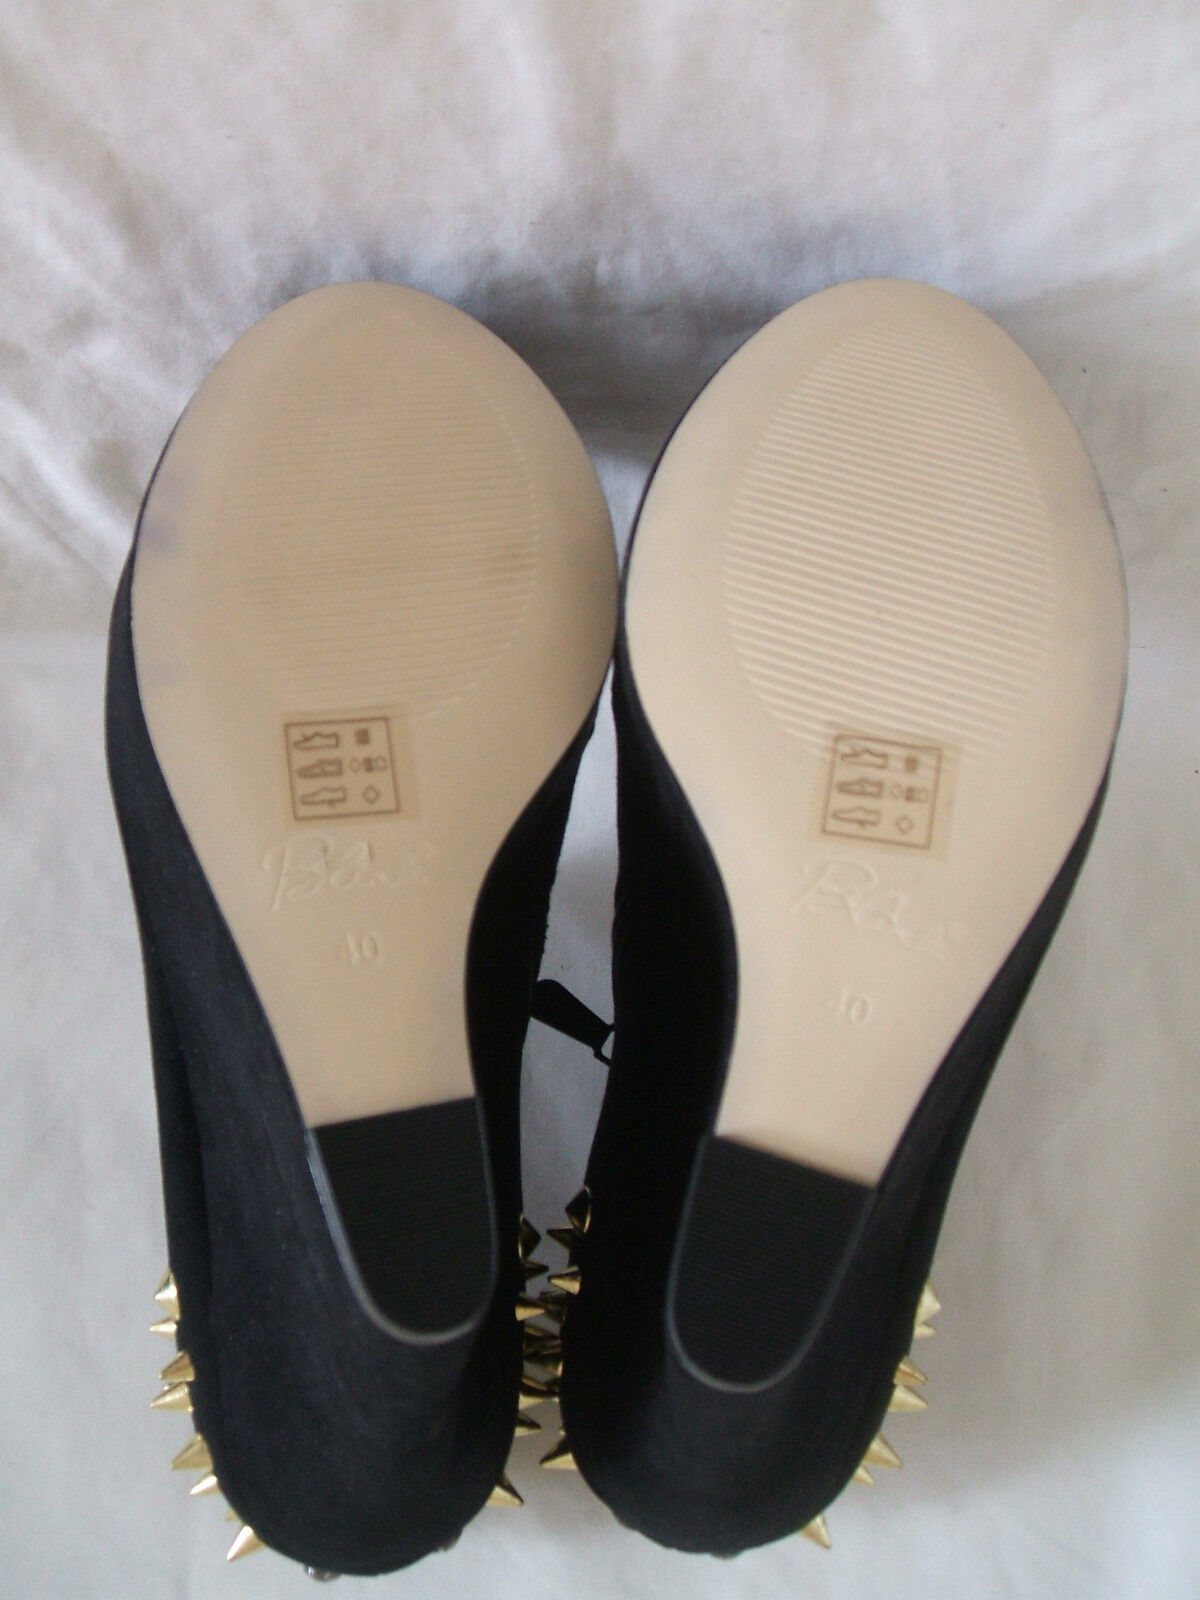 NEW BLINK SIZE 3 OR 7 BLACK FAUX SUEDE SHOE GOLD STUD WEDGE ANKLE SHOE SUEDE Stiefel 5e4af6